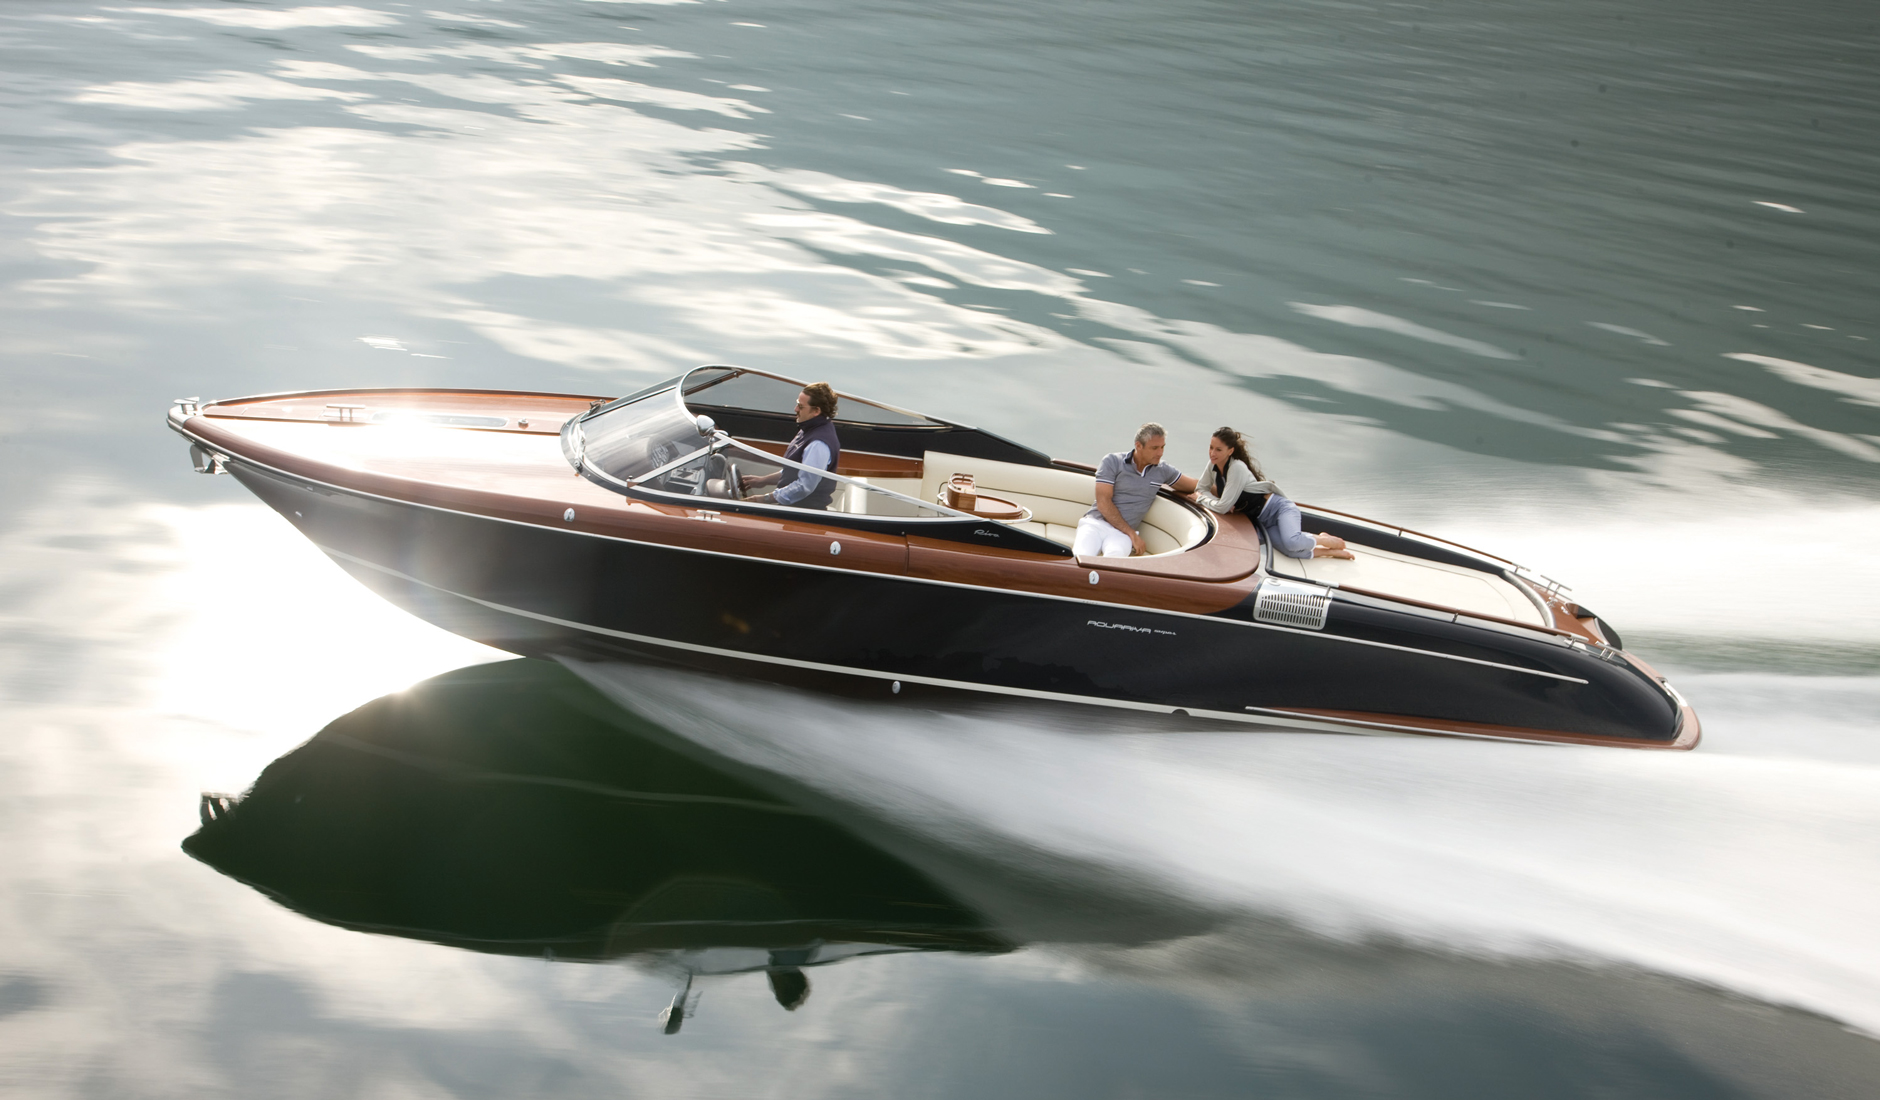 RIVA AQUARIVA SUPER 2019 год Фото  5